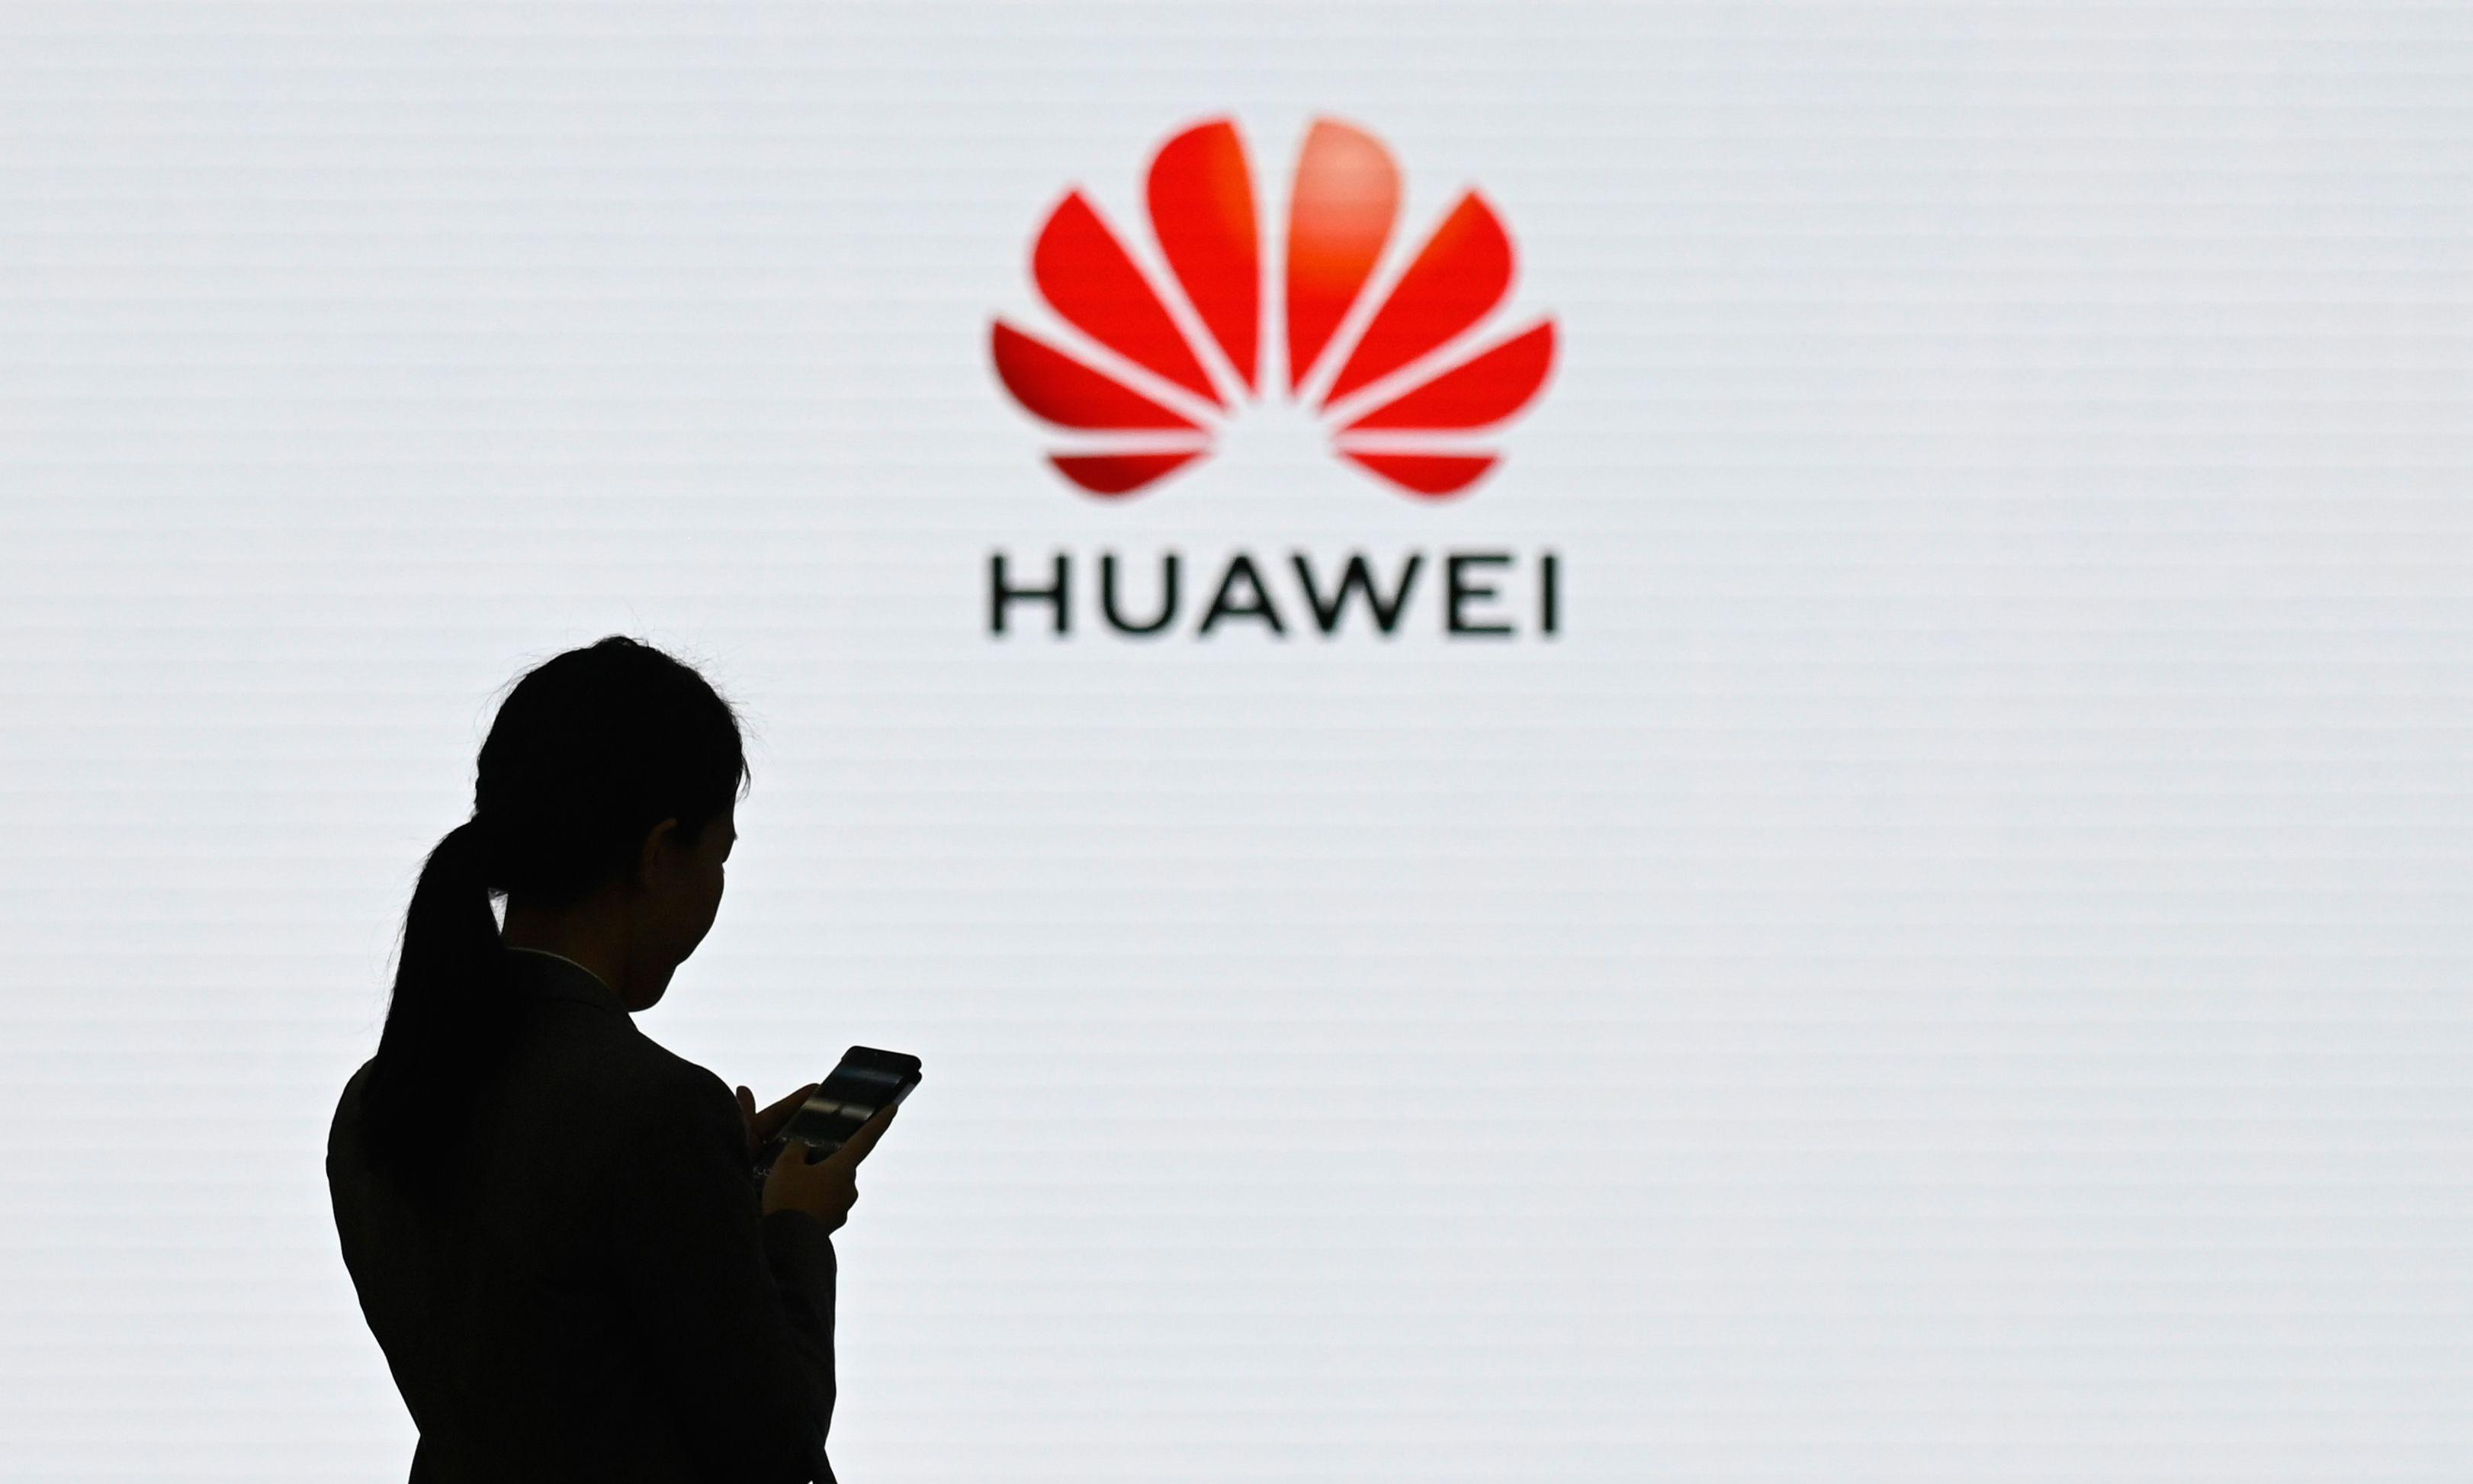 Huawei says 'survival is our first priority' in 2020 as western boycott bites